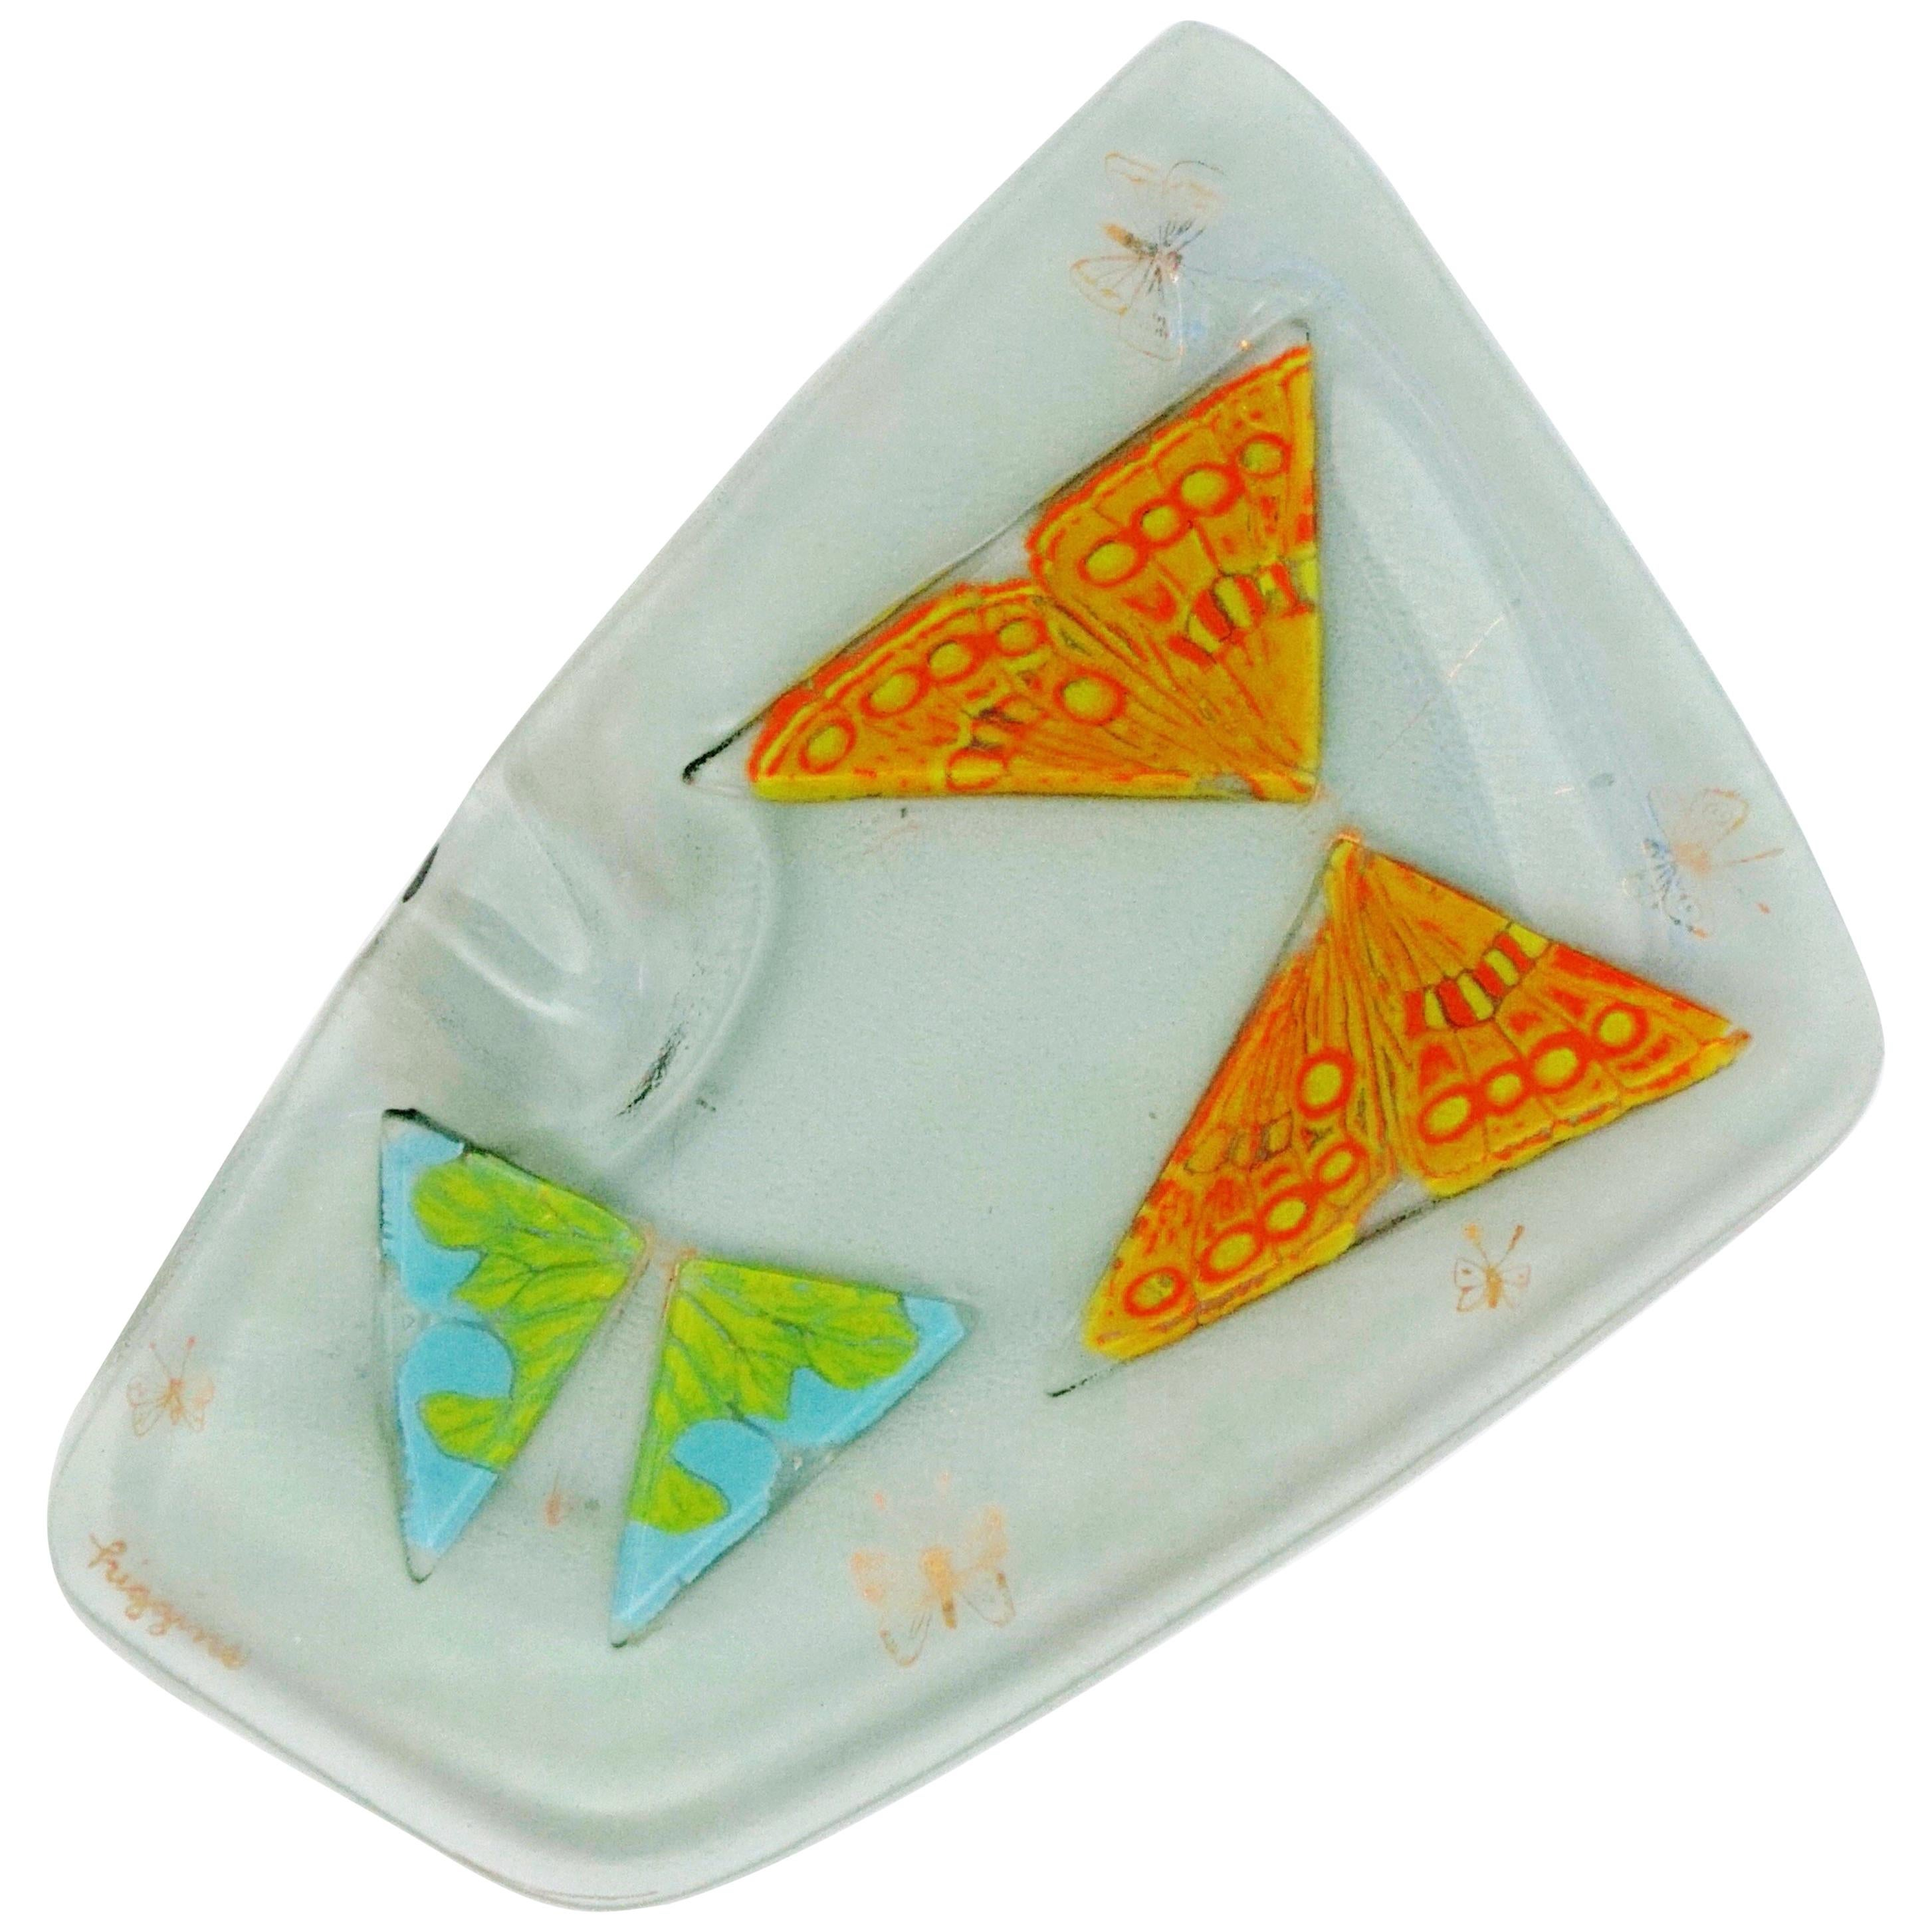 Butterfly Themed Fused Art Glass Ashtray by Higgins, Signed, circa 1950s